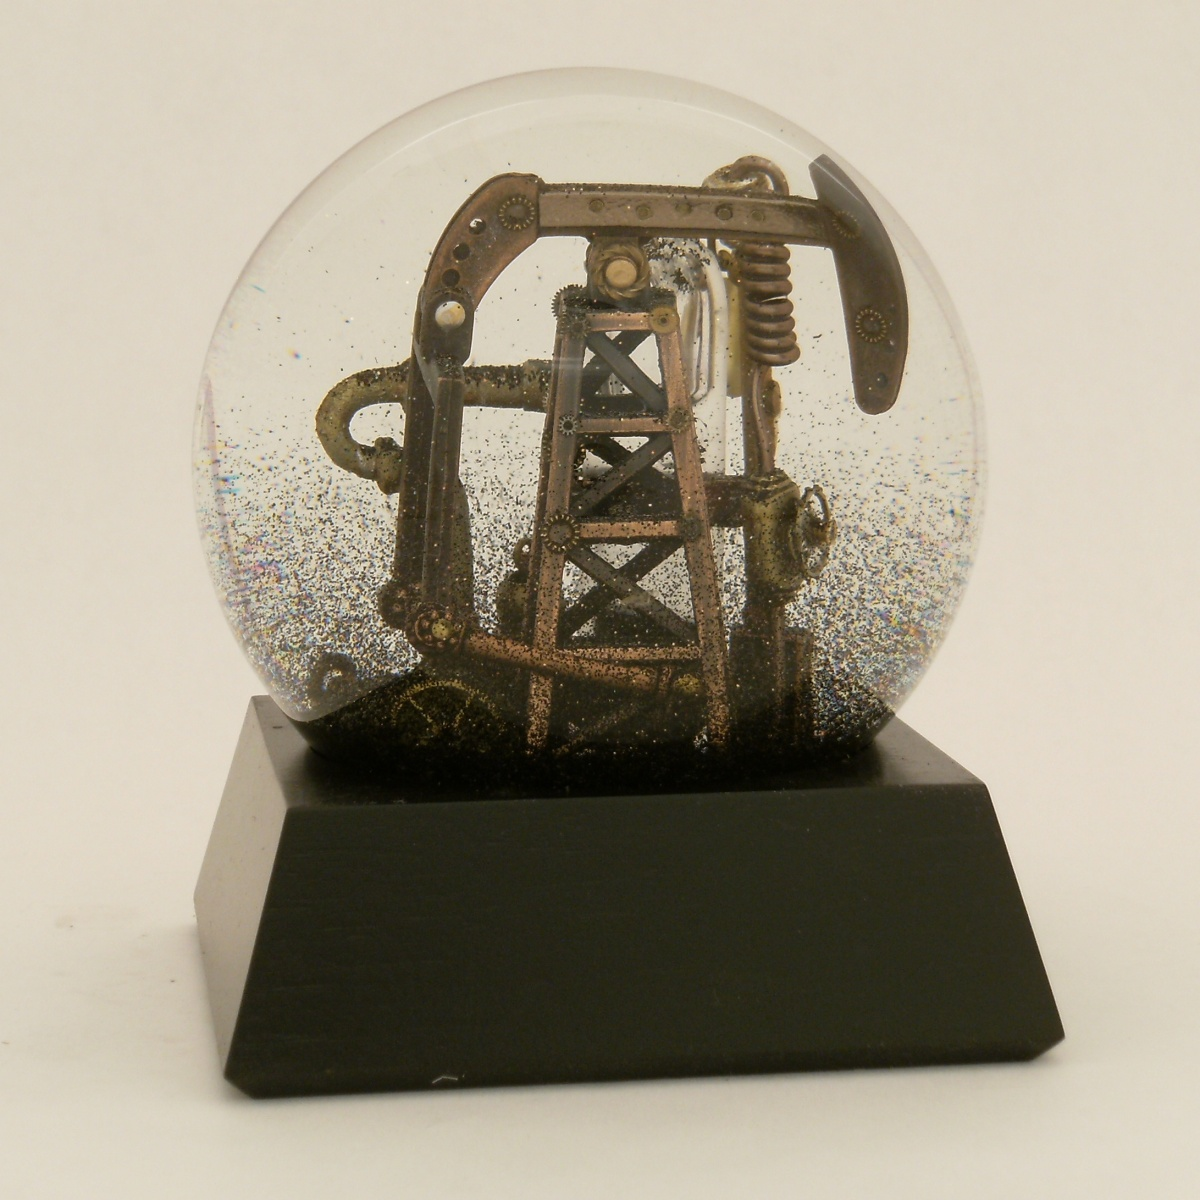 Oil Well that Ends Well, custom snow globe by Camryn Forrest Designs 2013